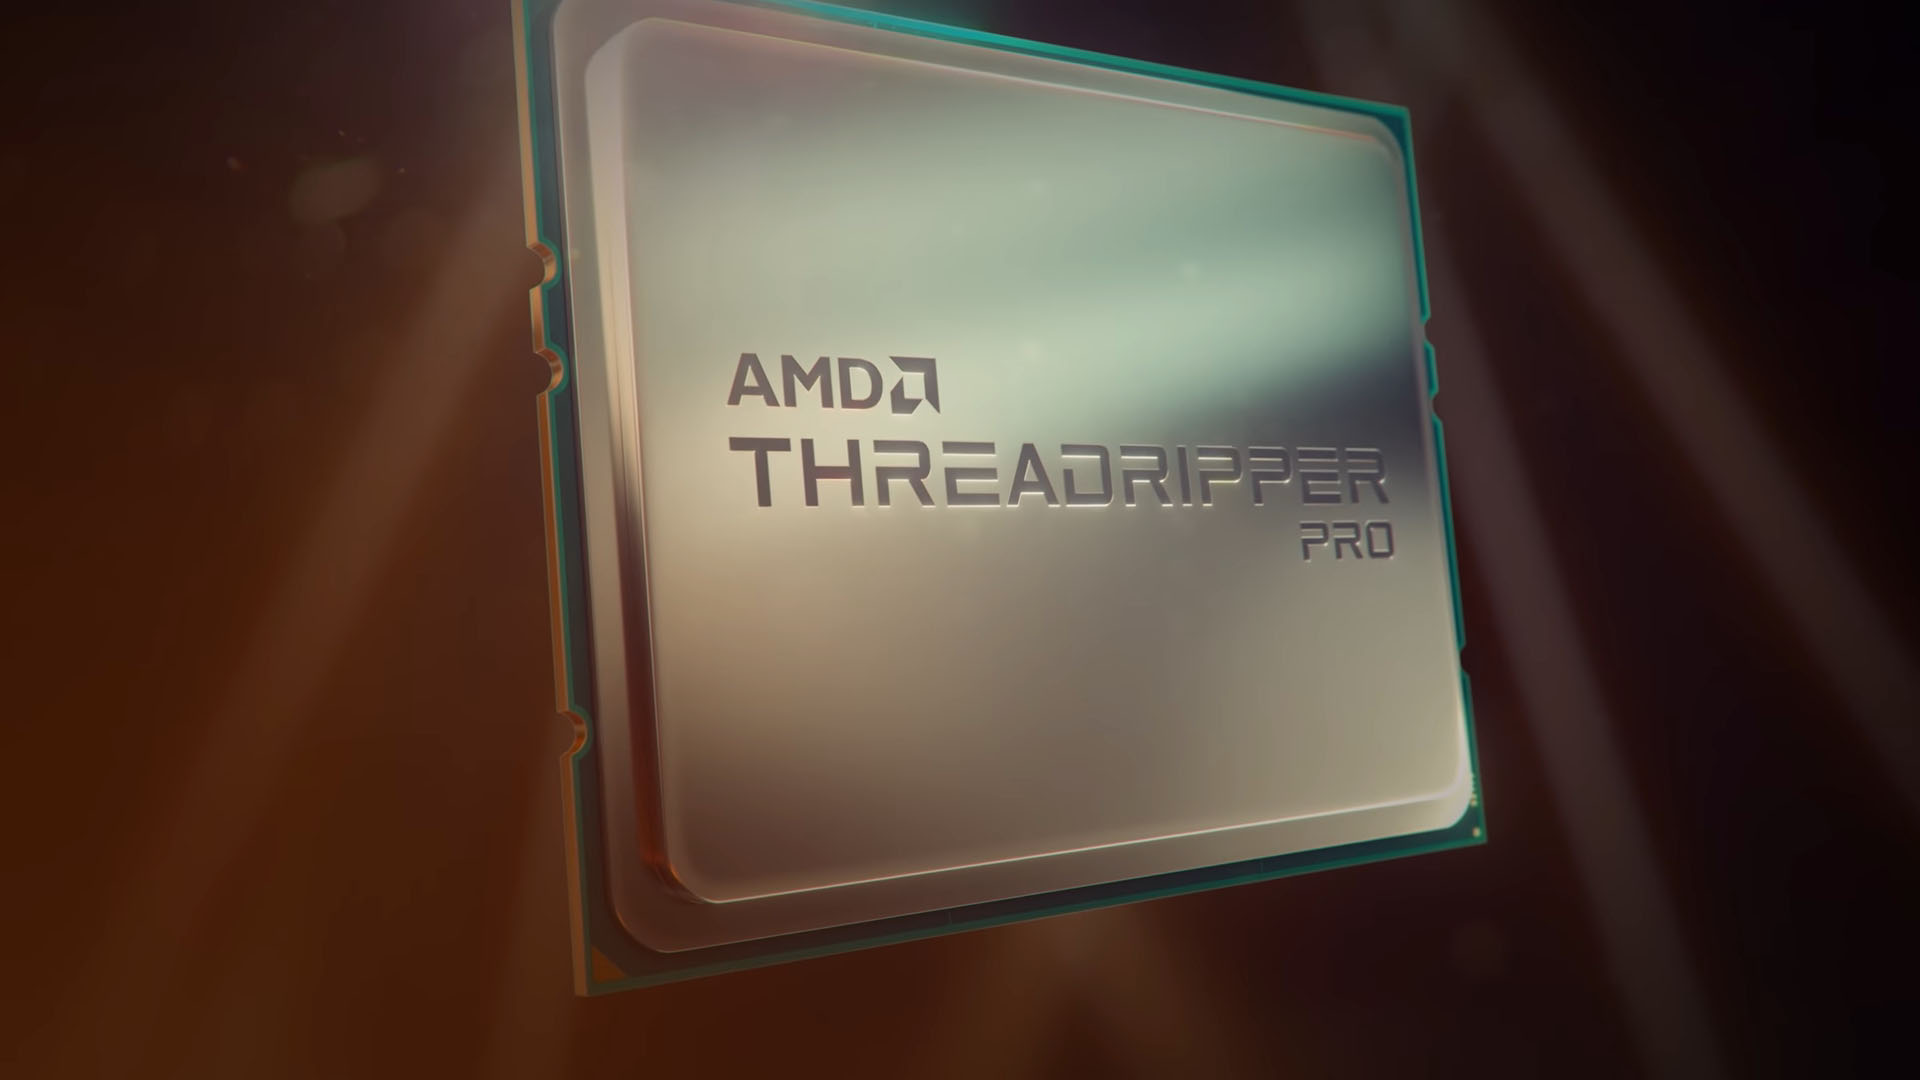 Amd Brings In The Ryzen Threadripper Pro Processors Along With Lenovo Partnership Bunnygaming Com